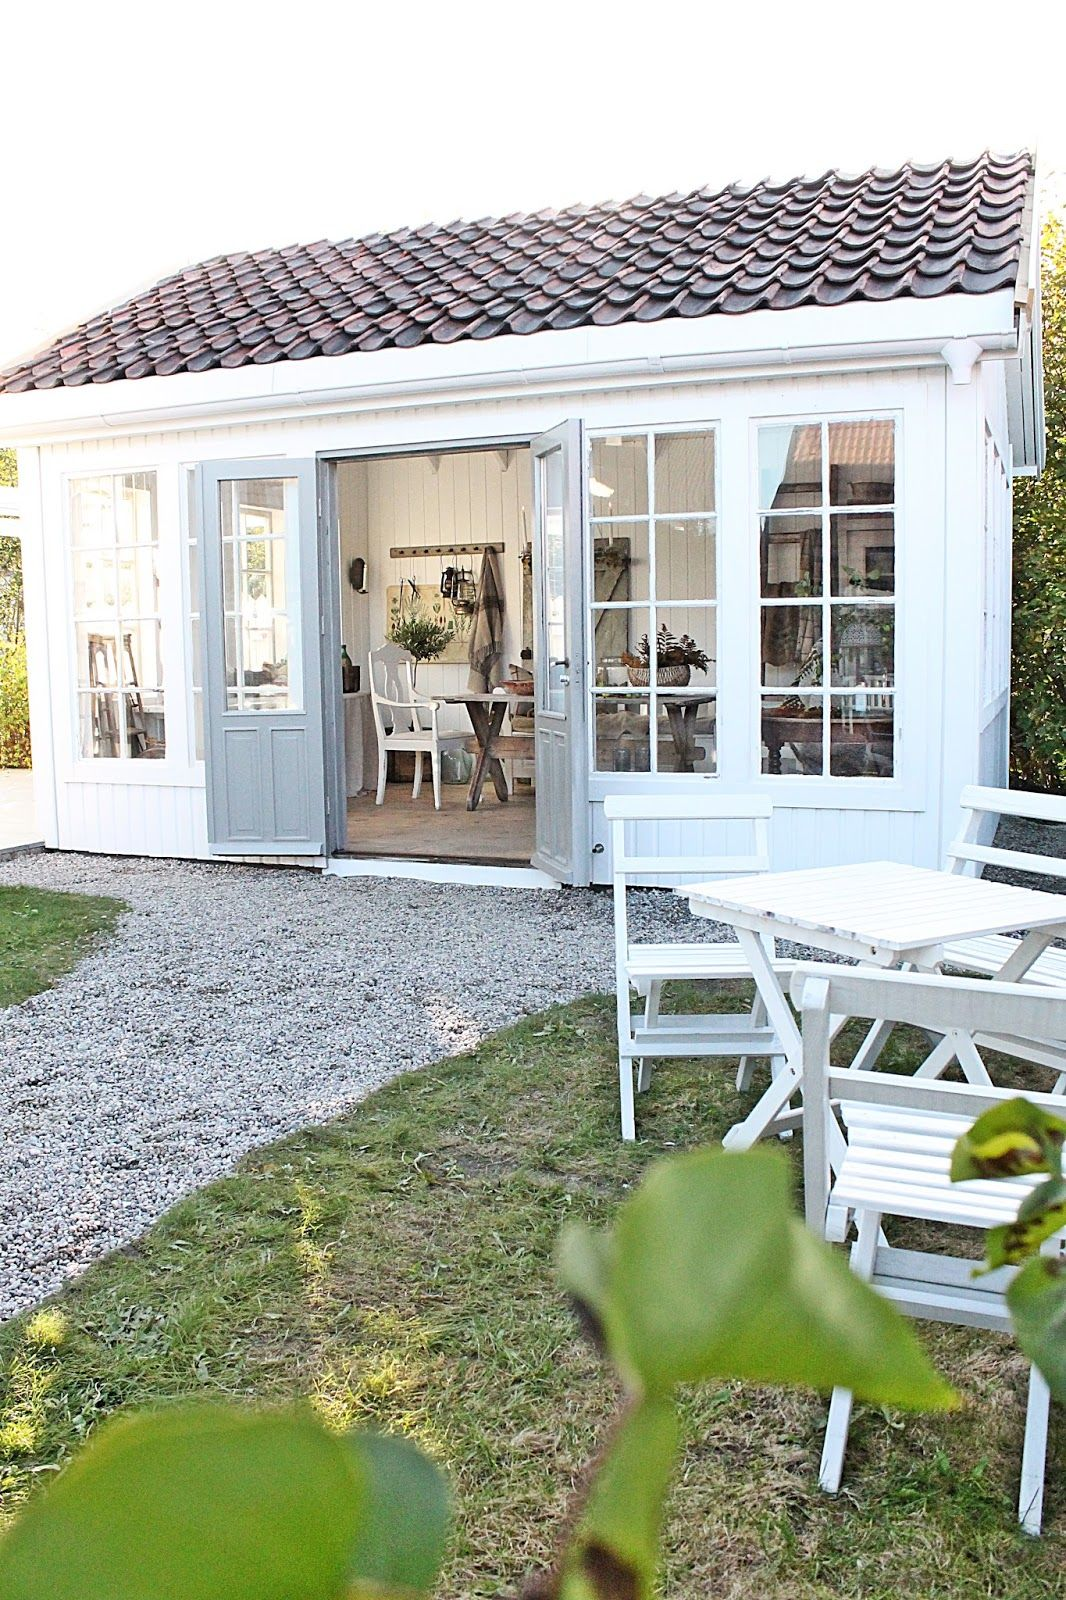 Vibeke design houses cottages tiny spaces for Cottage haus bauen